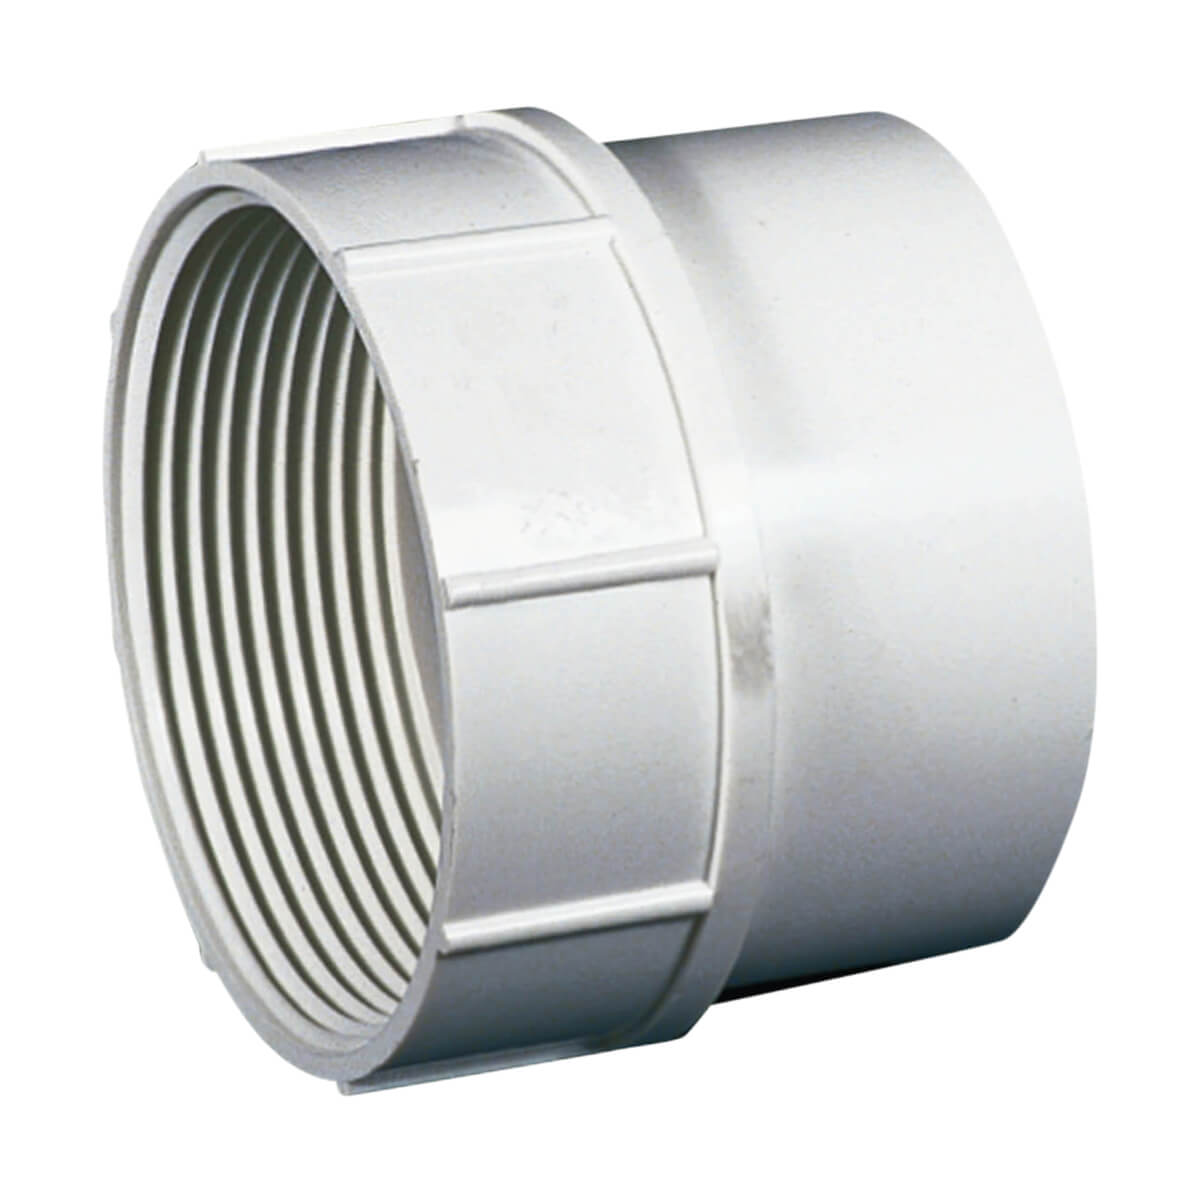 PVC-BDS Cleanout Adapter - Spigot x FPT - 4-in